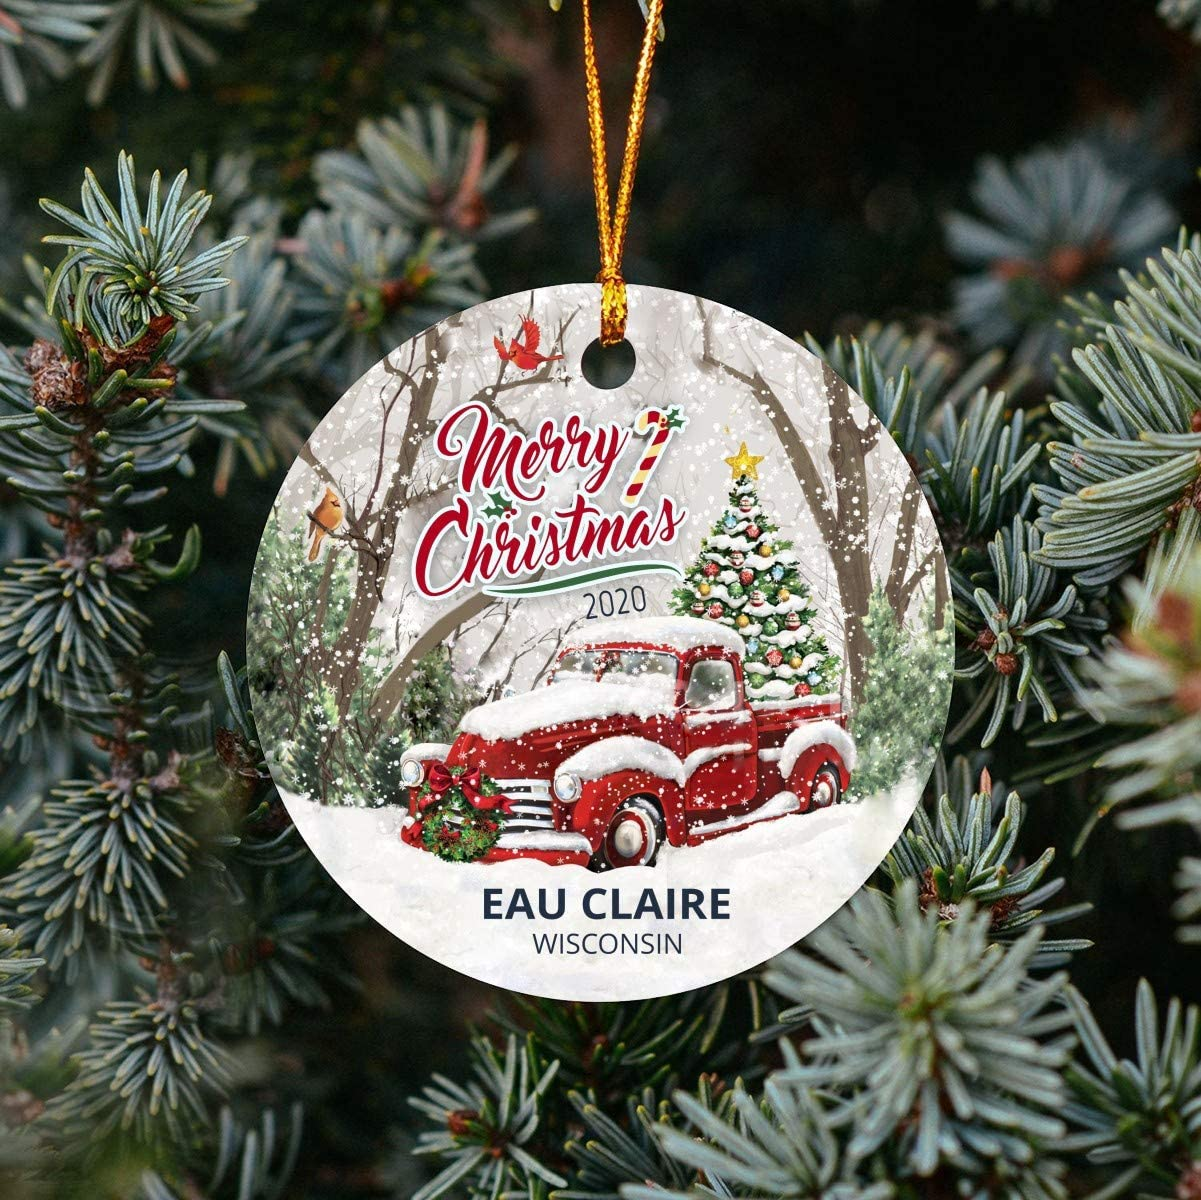 """Christmas Tree Ornaments 2020 - Ornament Customize With Name City And State Eau Claire Wisconsin WI - Red Truck Xmas Ornaments 3"""" Plastic Gift For Family, Friend And Housewarming"""